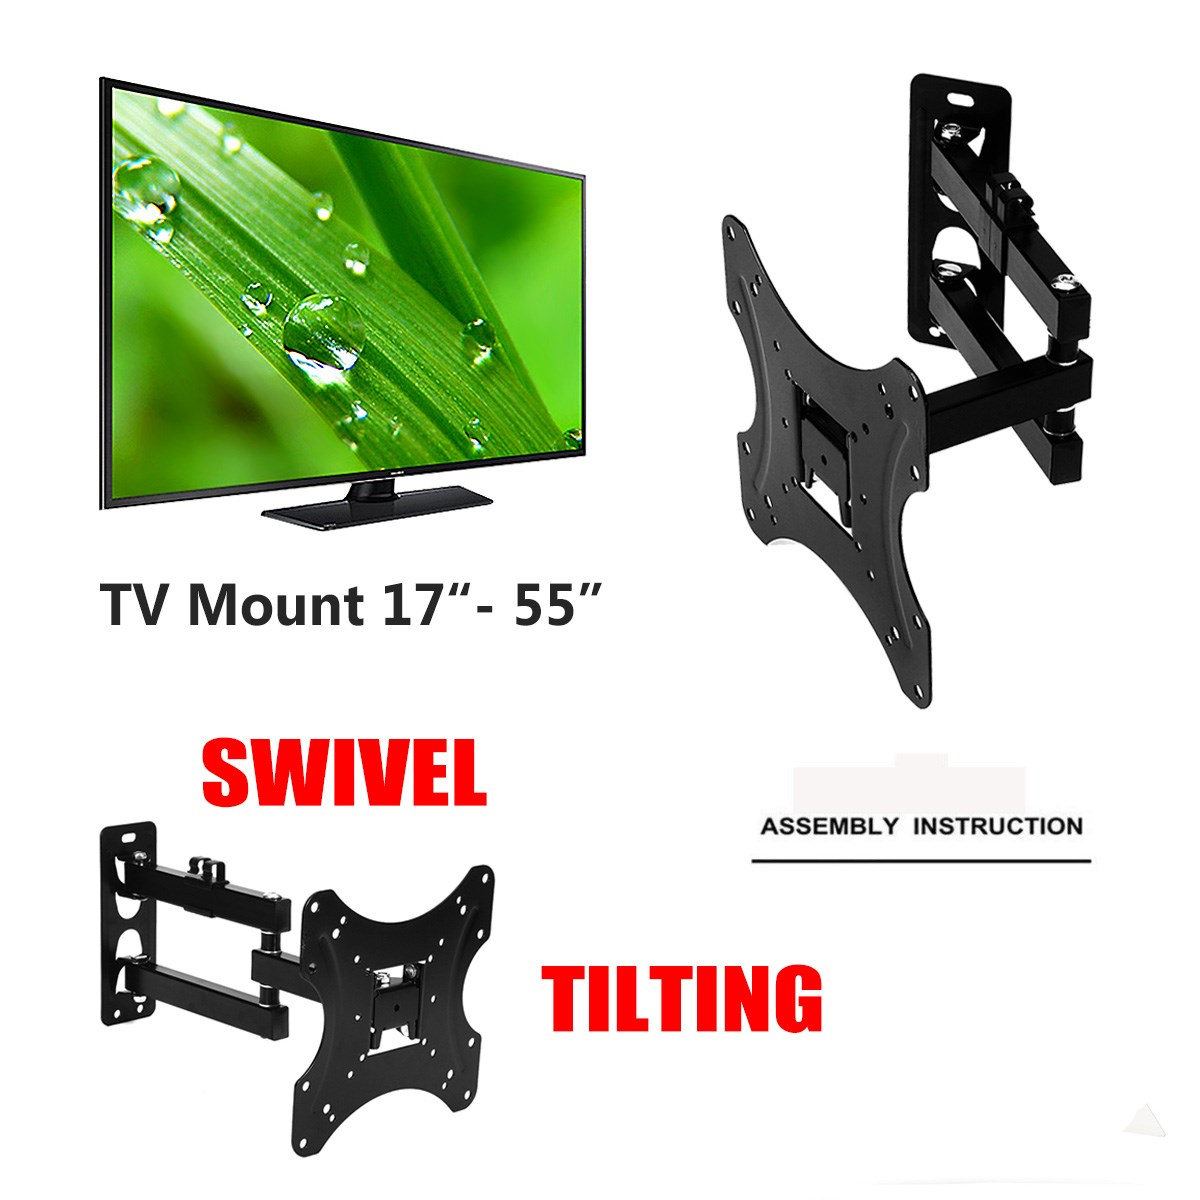 1Pcs Full Motion 180Degree Rotate TV Wall Mount Bracket Supports 17-55Inch LED LCD Flat Screen Universal Telescopic Rack